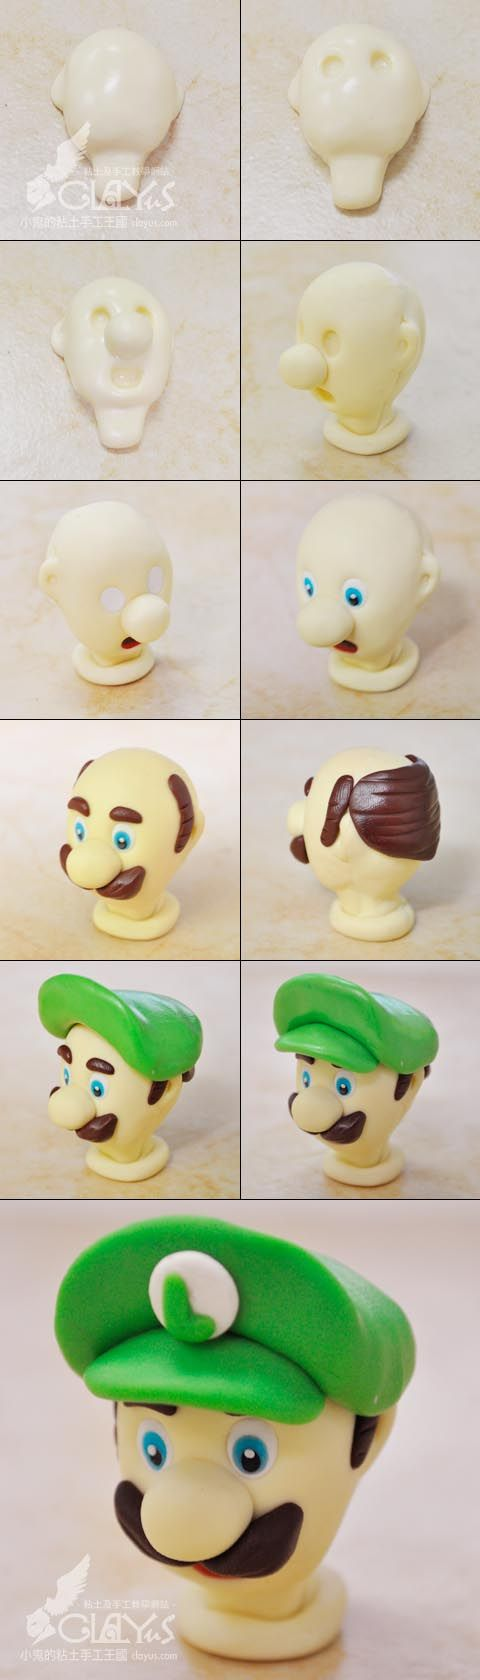 Luigi head model - replace the clay with fondant. Wish i have more time to do this for my son's birthday party.